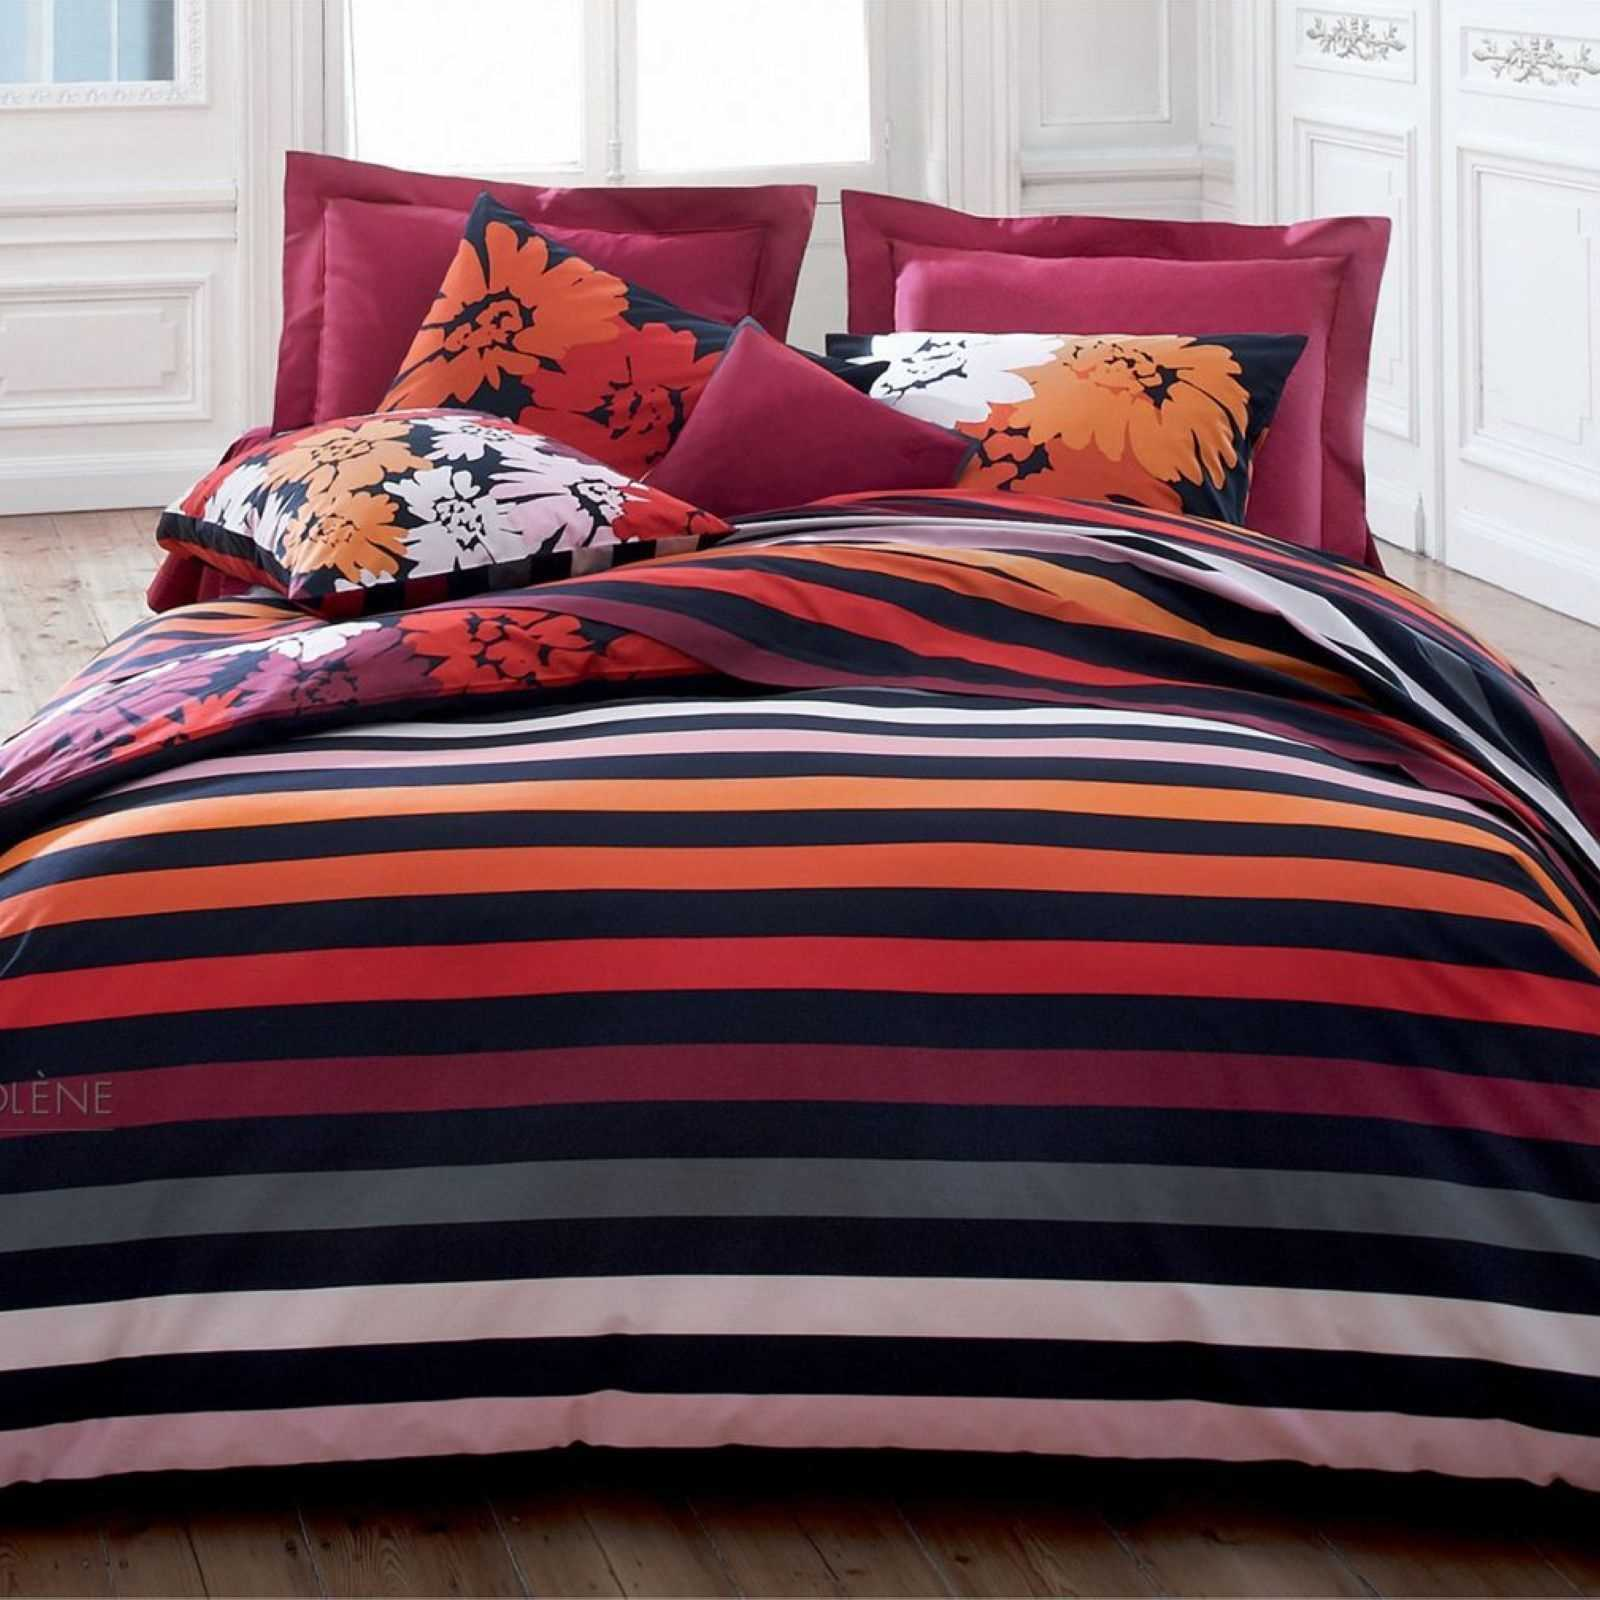 housse de couette rykiel solde 28 images housse de couette 240x220cm rue de seine par rykiel. Black Bedroom Furniture Sets. Home Design Ideas